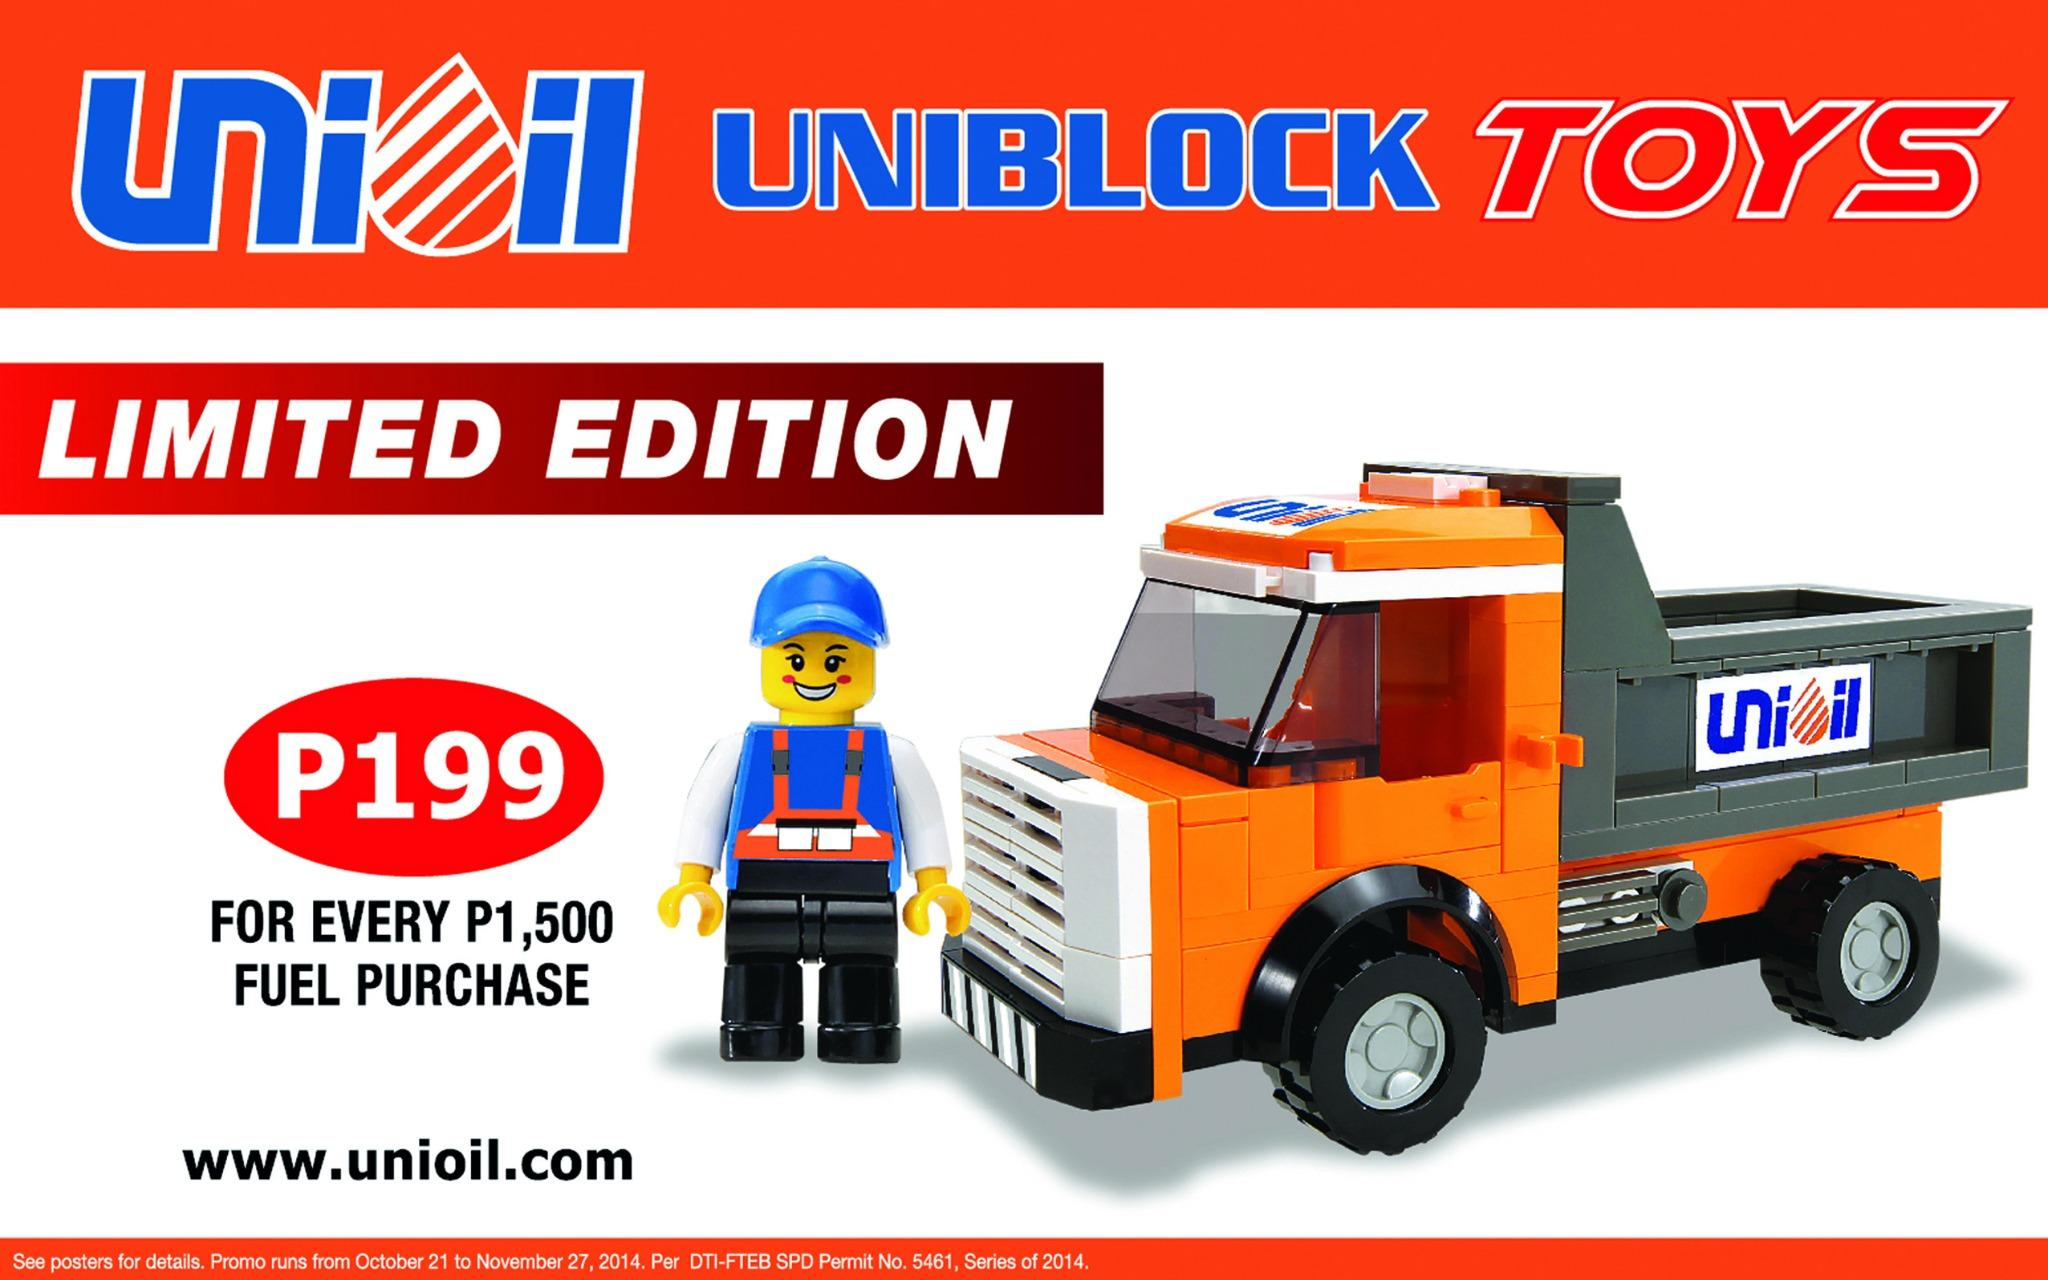 Unioil On Twitter Get This Uniblock Dump Truck And 5 More Limited